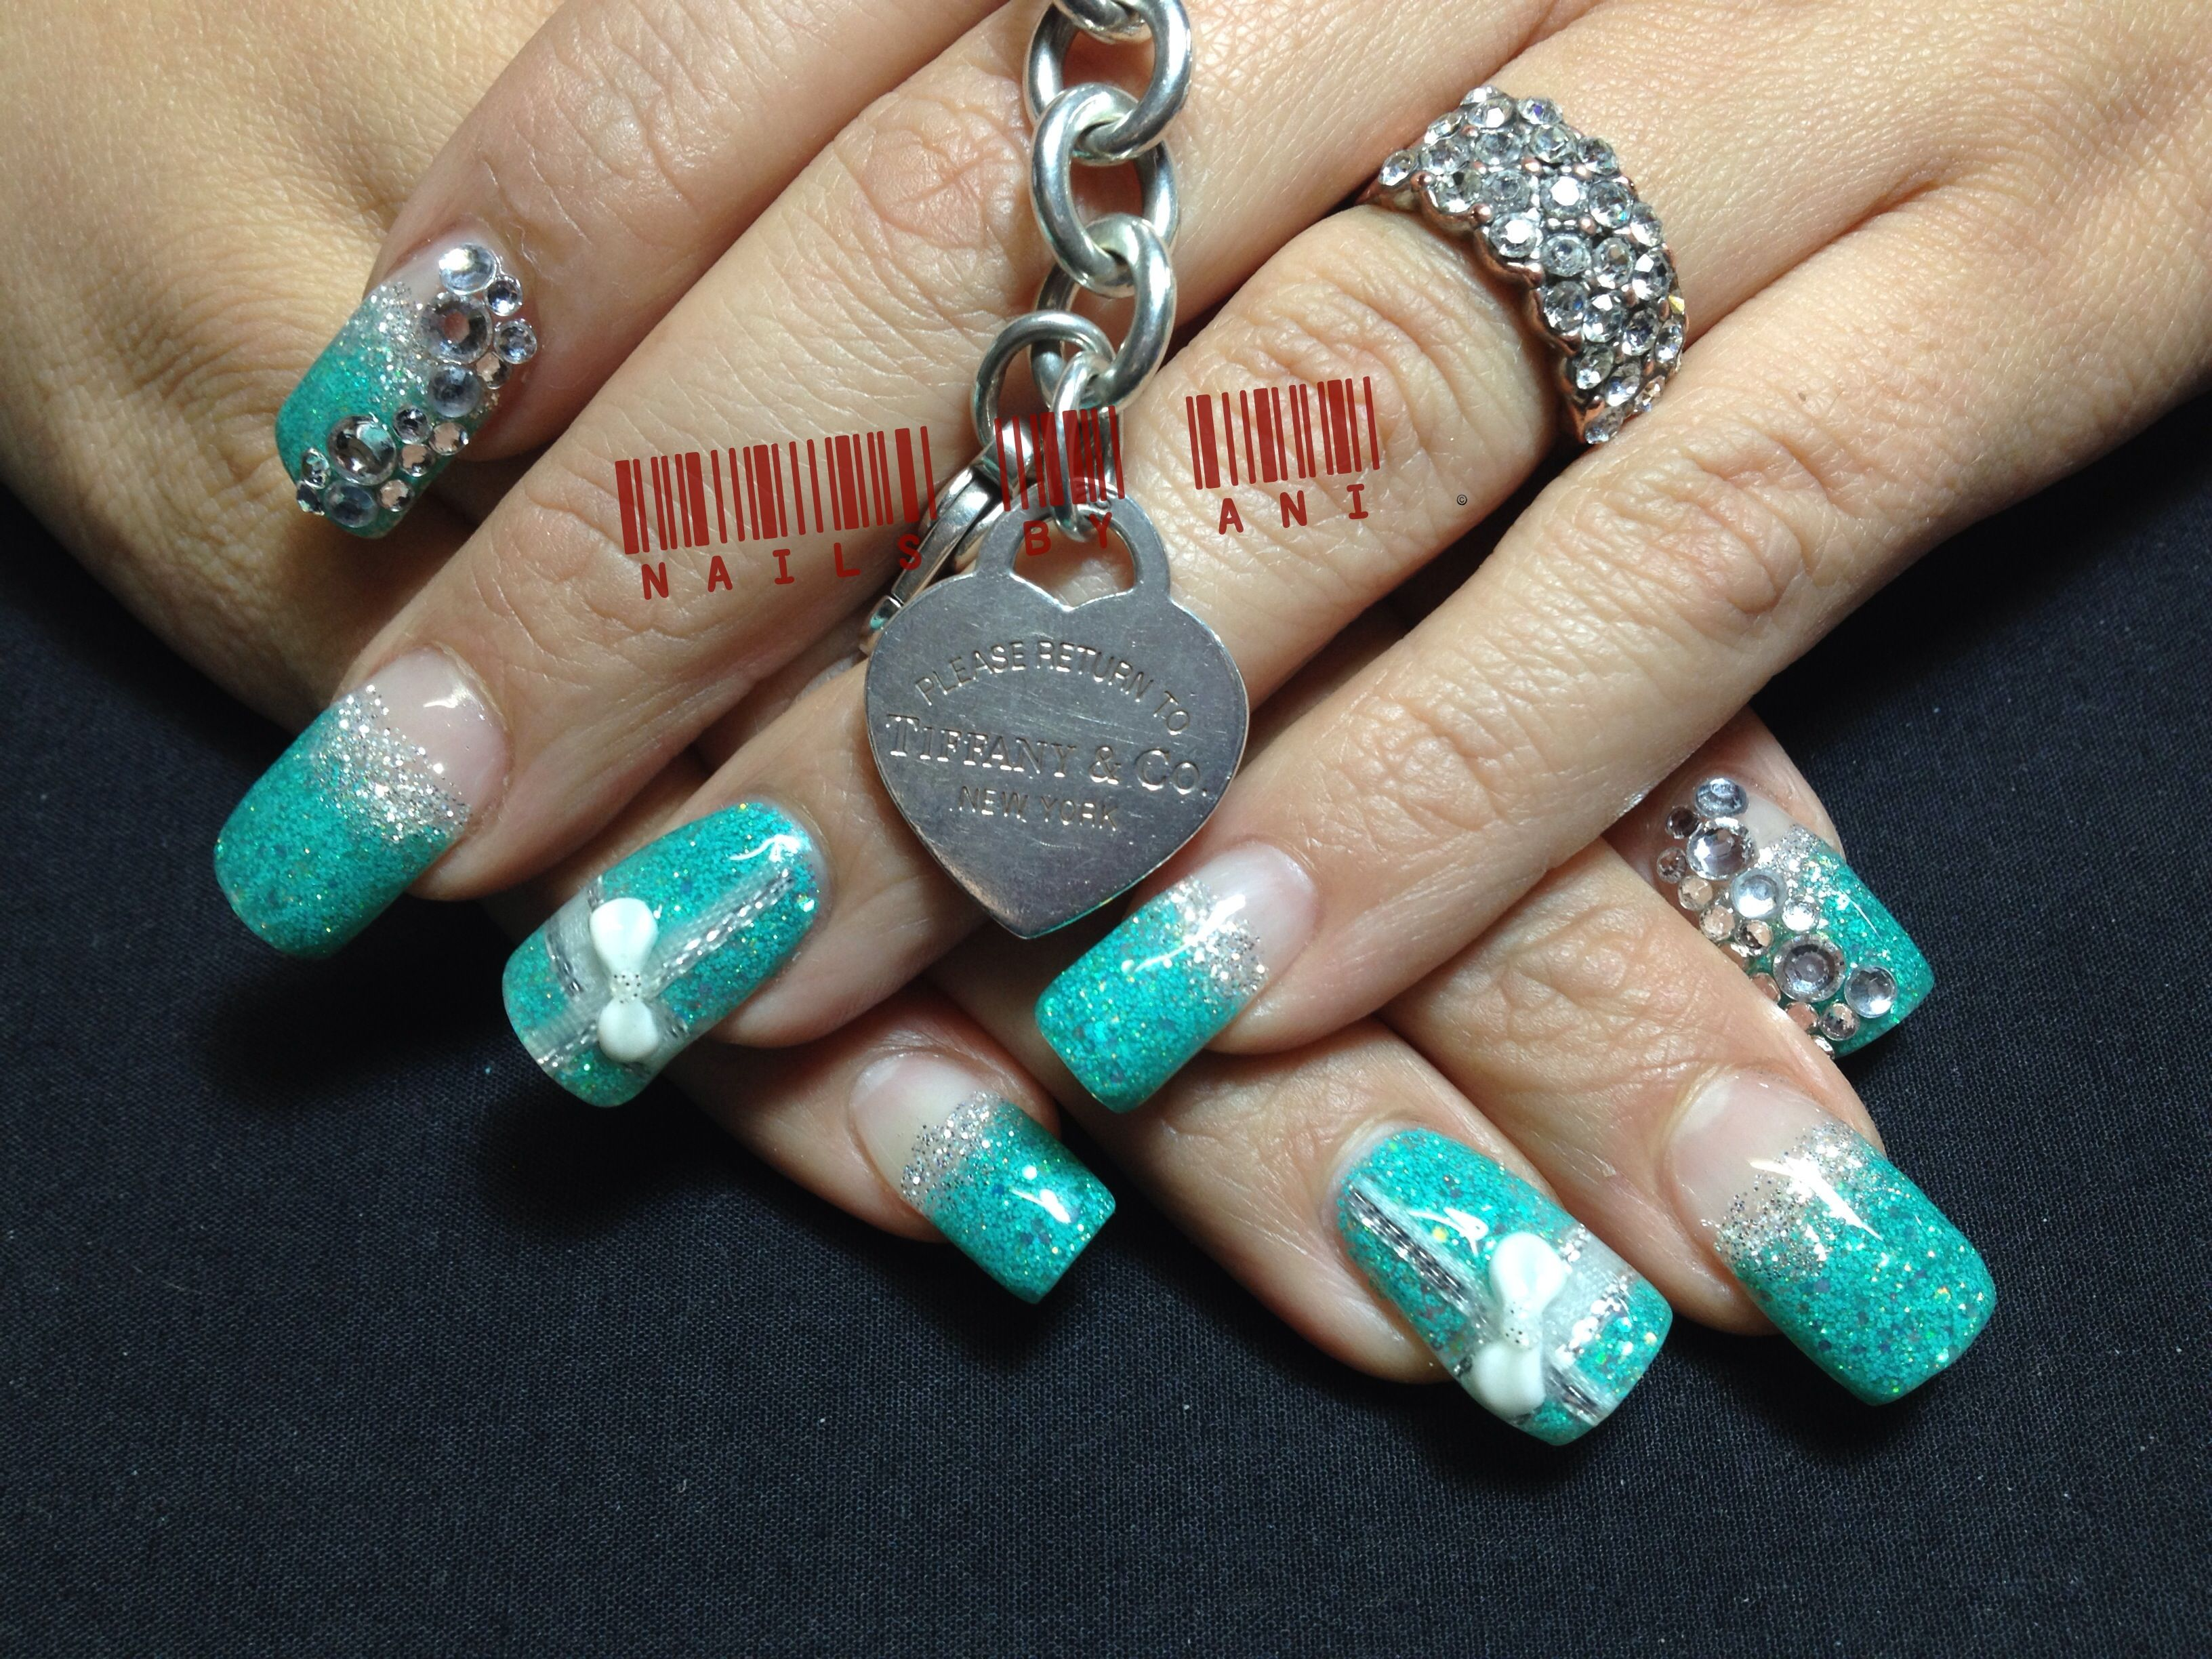 Tiffany And Co Inspired Acrylic Nail Designs Pinterest Acrylic